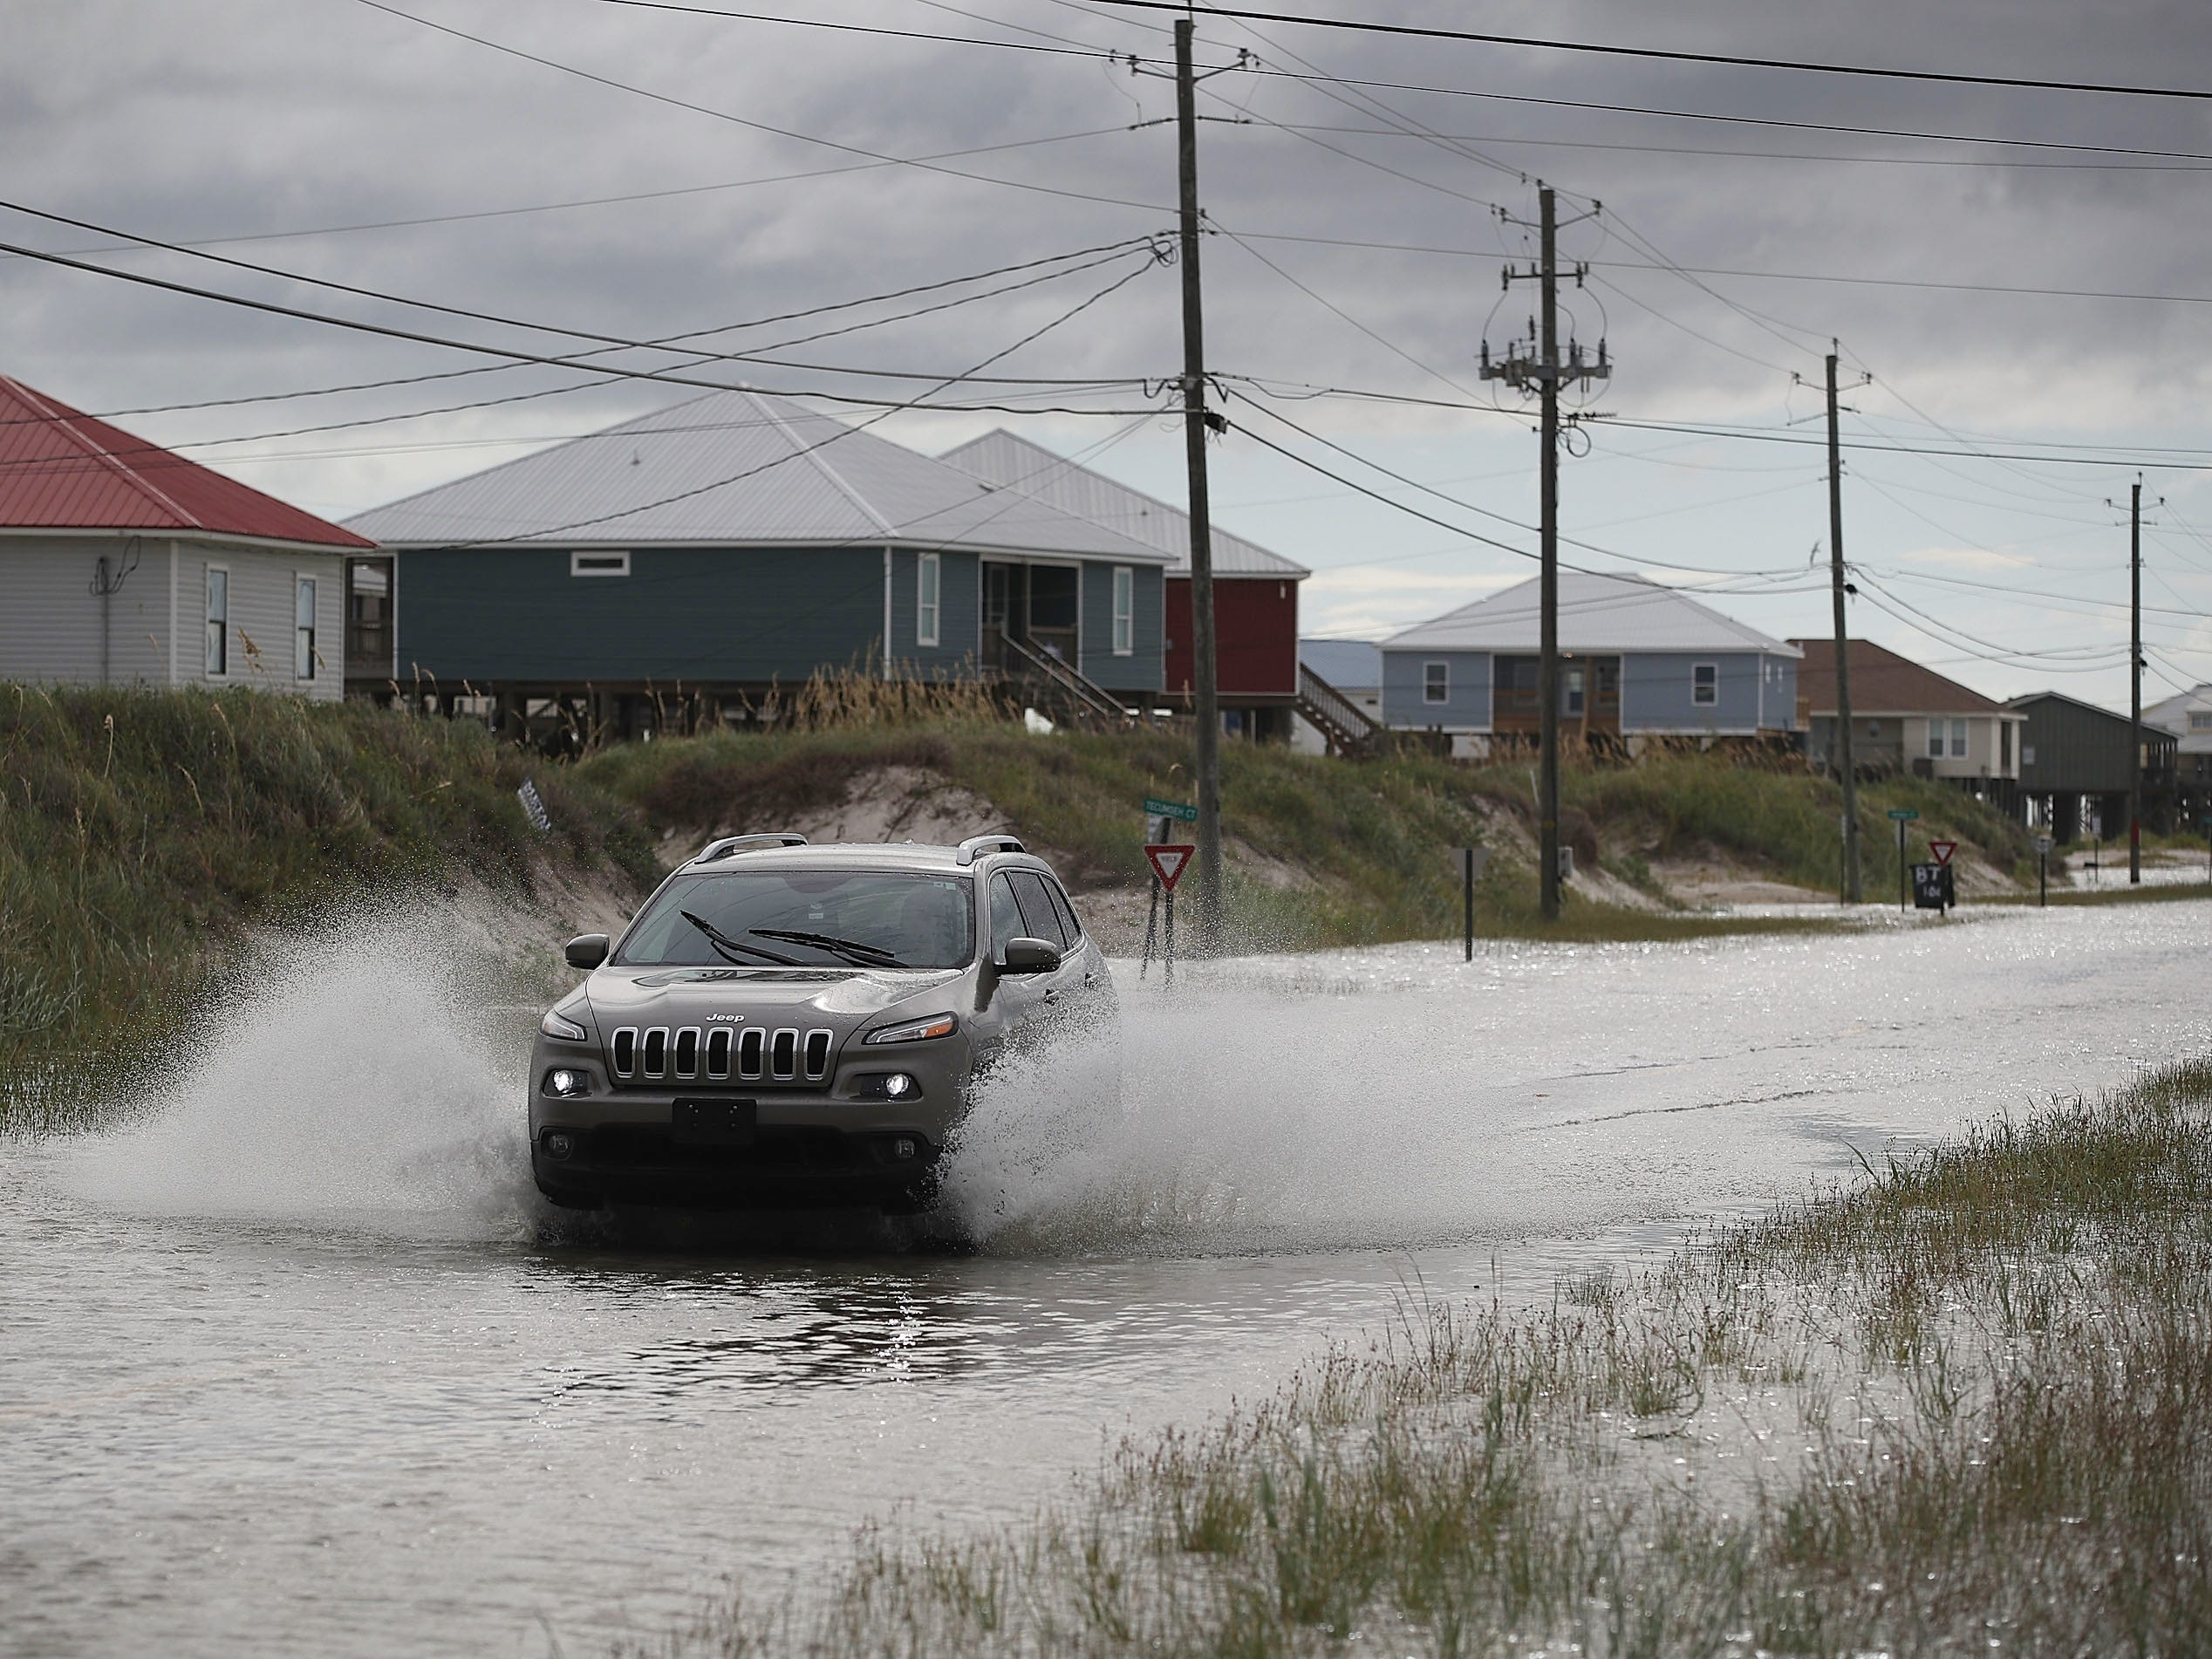 DAUPHIN ISLAND, AL - SEPTEMBER 04:  A vehicle drives along a flooded street caused by the approaching Tropical Storm Gordon on September 4, 2018 in Dauphin Island, Alabama.  Gordon heads for the northern Gulf Coast area as a strong tropical storm and could possibly strengthen into a Category 1 hurricane.  (Photo by Joe Raedle/Getty Images) ORG XMIT: 775220251 ORIG FILE ID: 1026740144